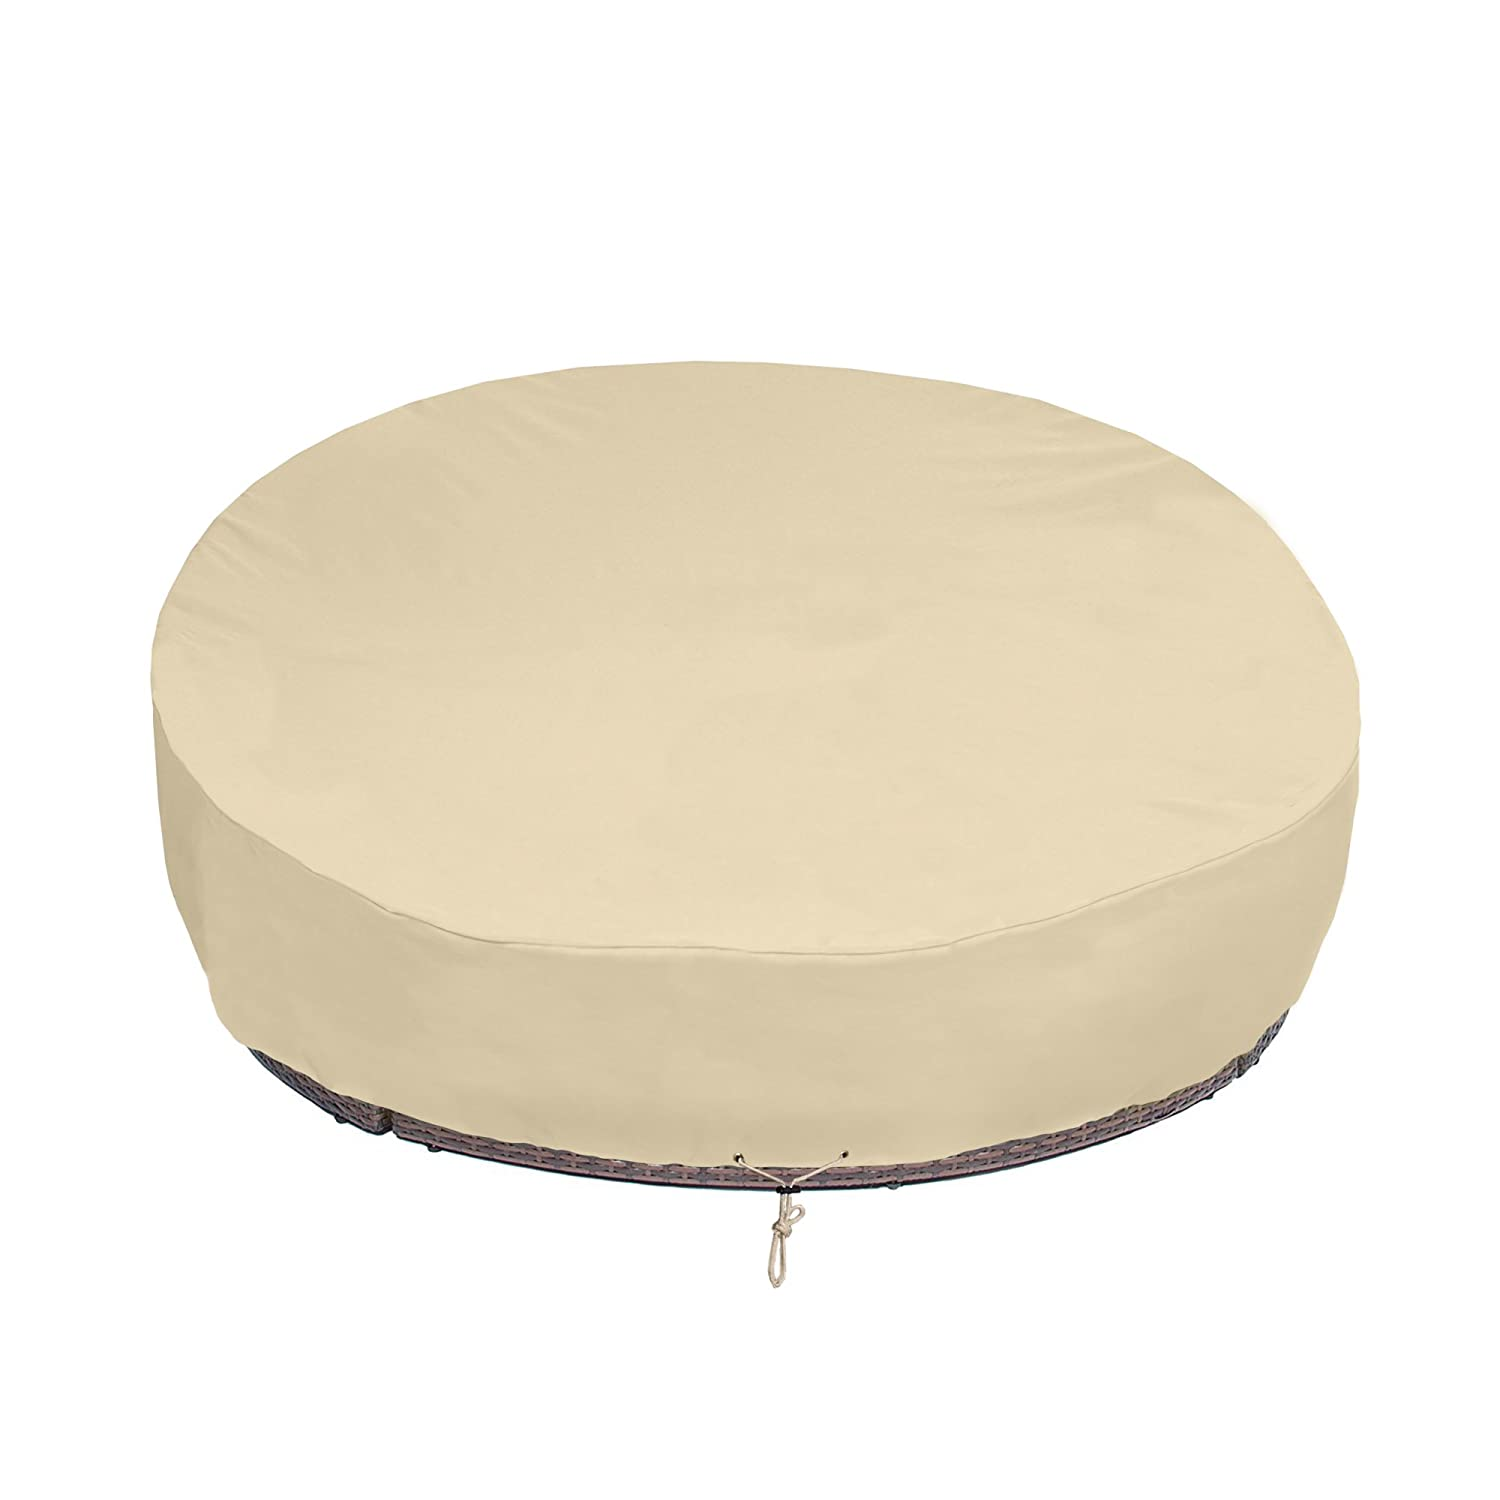 """SunPatio Round Patio Daybed Cover 88 Inch, Heavy Duty Outdoor Canopy Daybed Sofa Cover with Waterproof Sealed Seam, 88"""" L x 85"""" W x 35""""/16"""" H, All Weather Protection, Beige"""